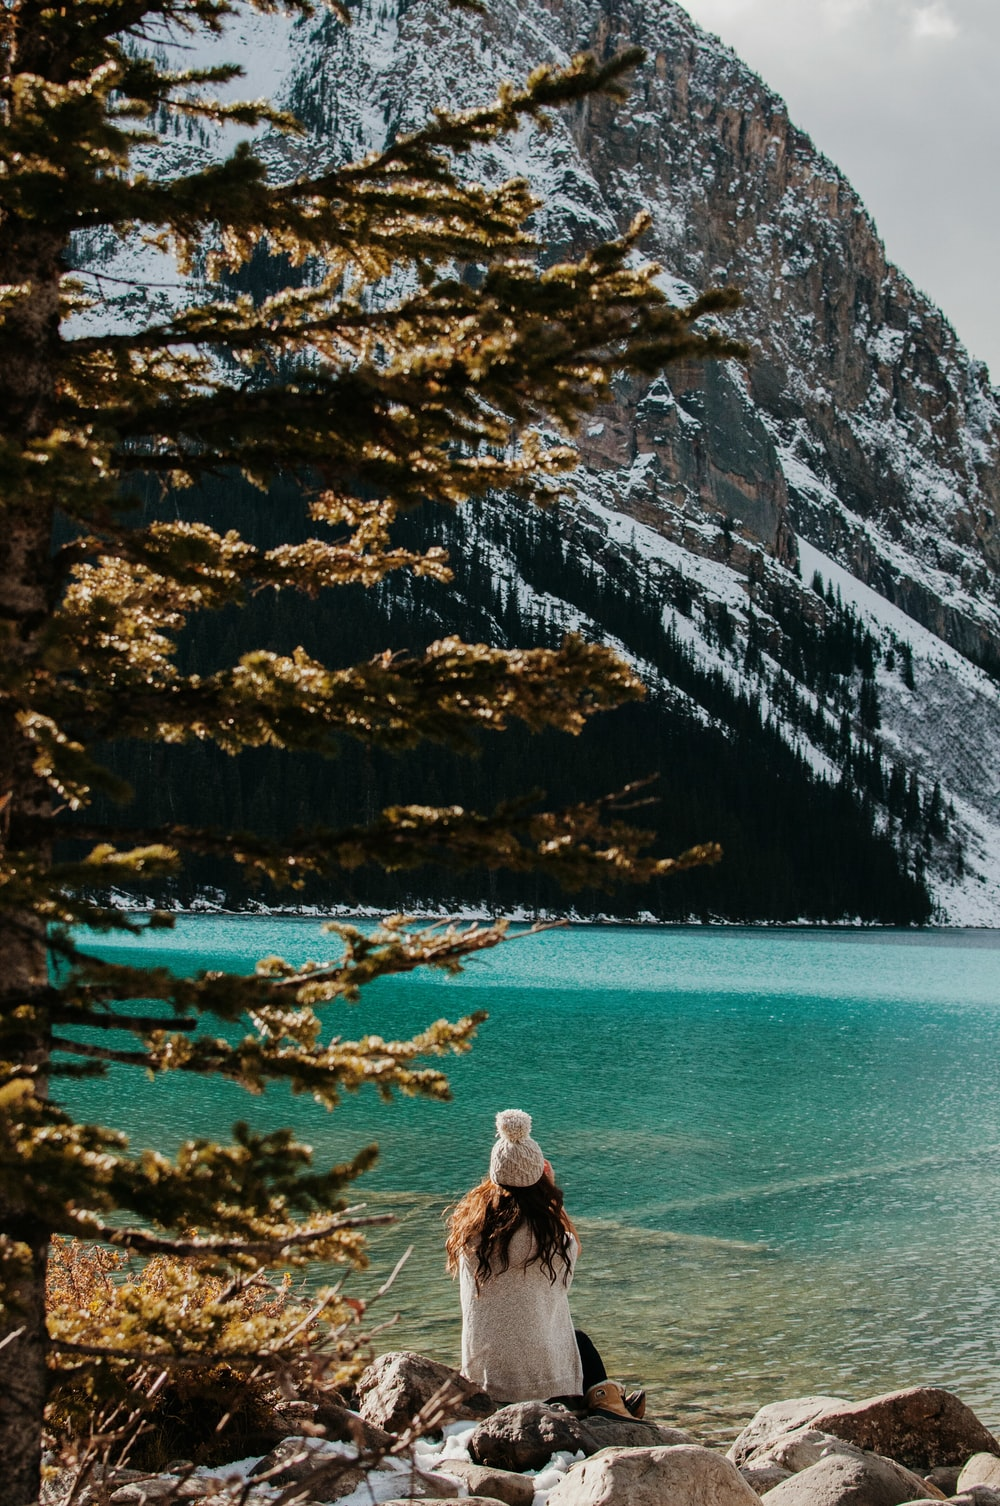 woman sitting on stone facing body of water and glacier mountain during day